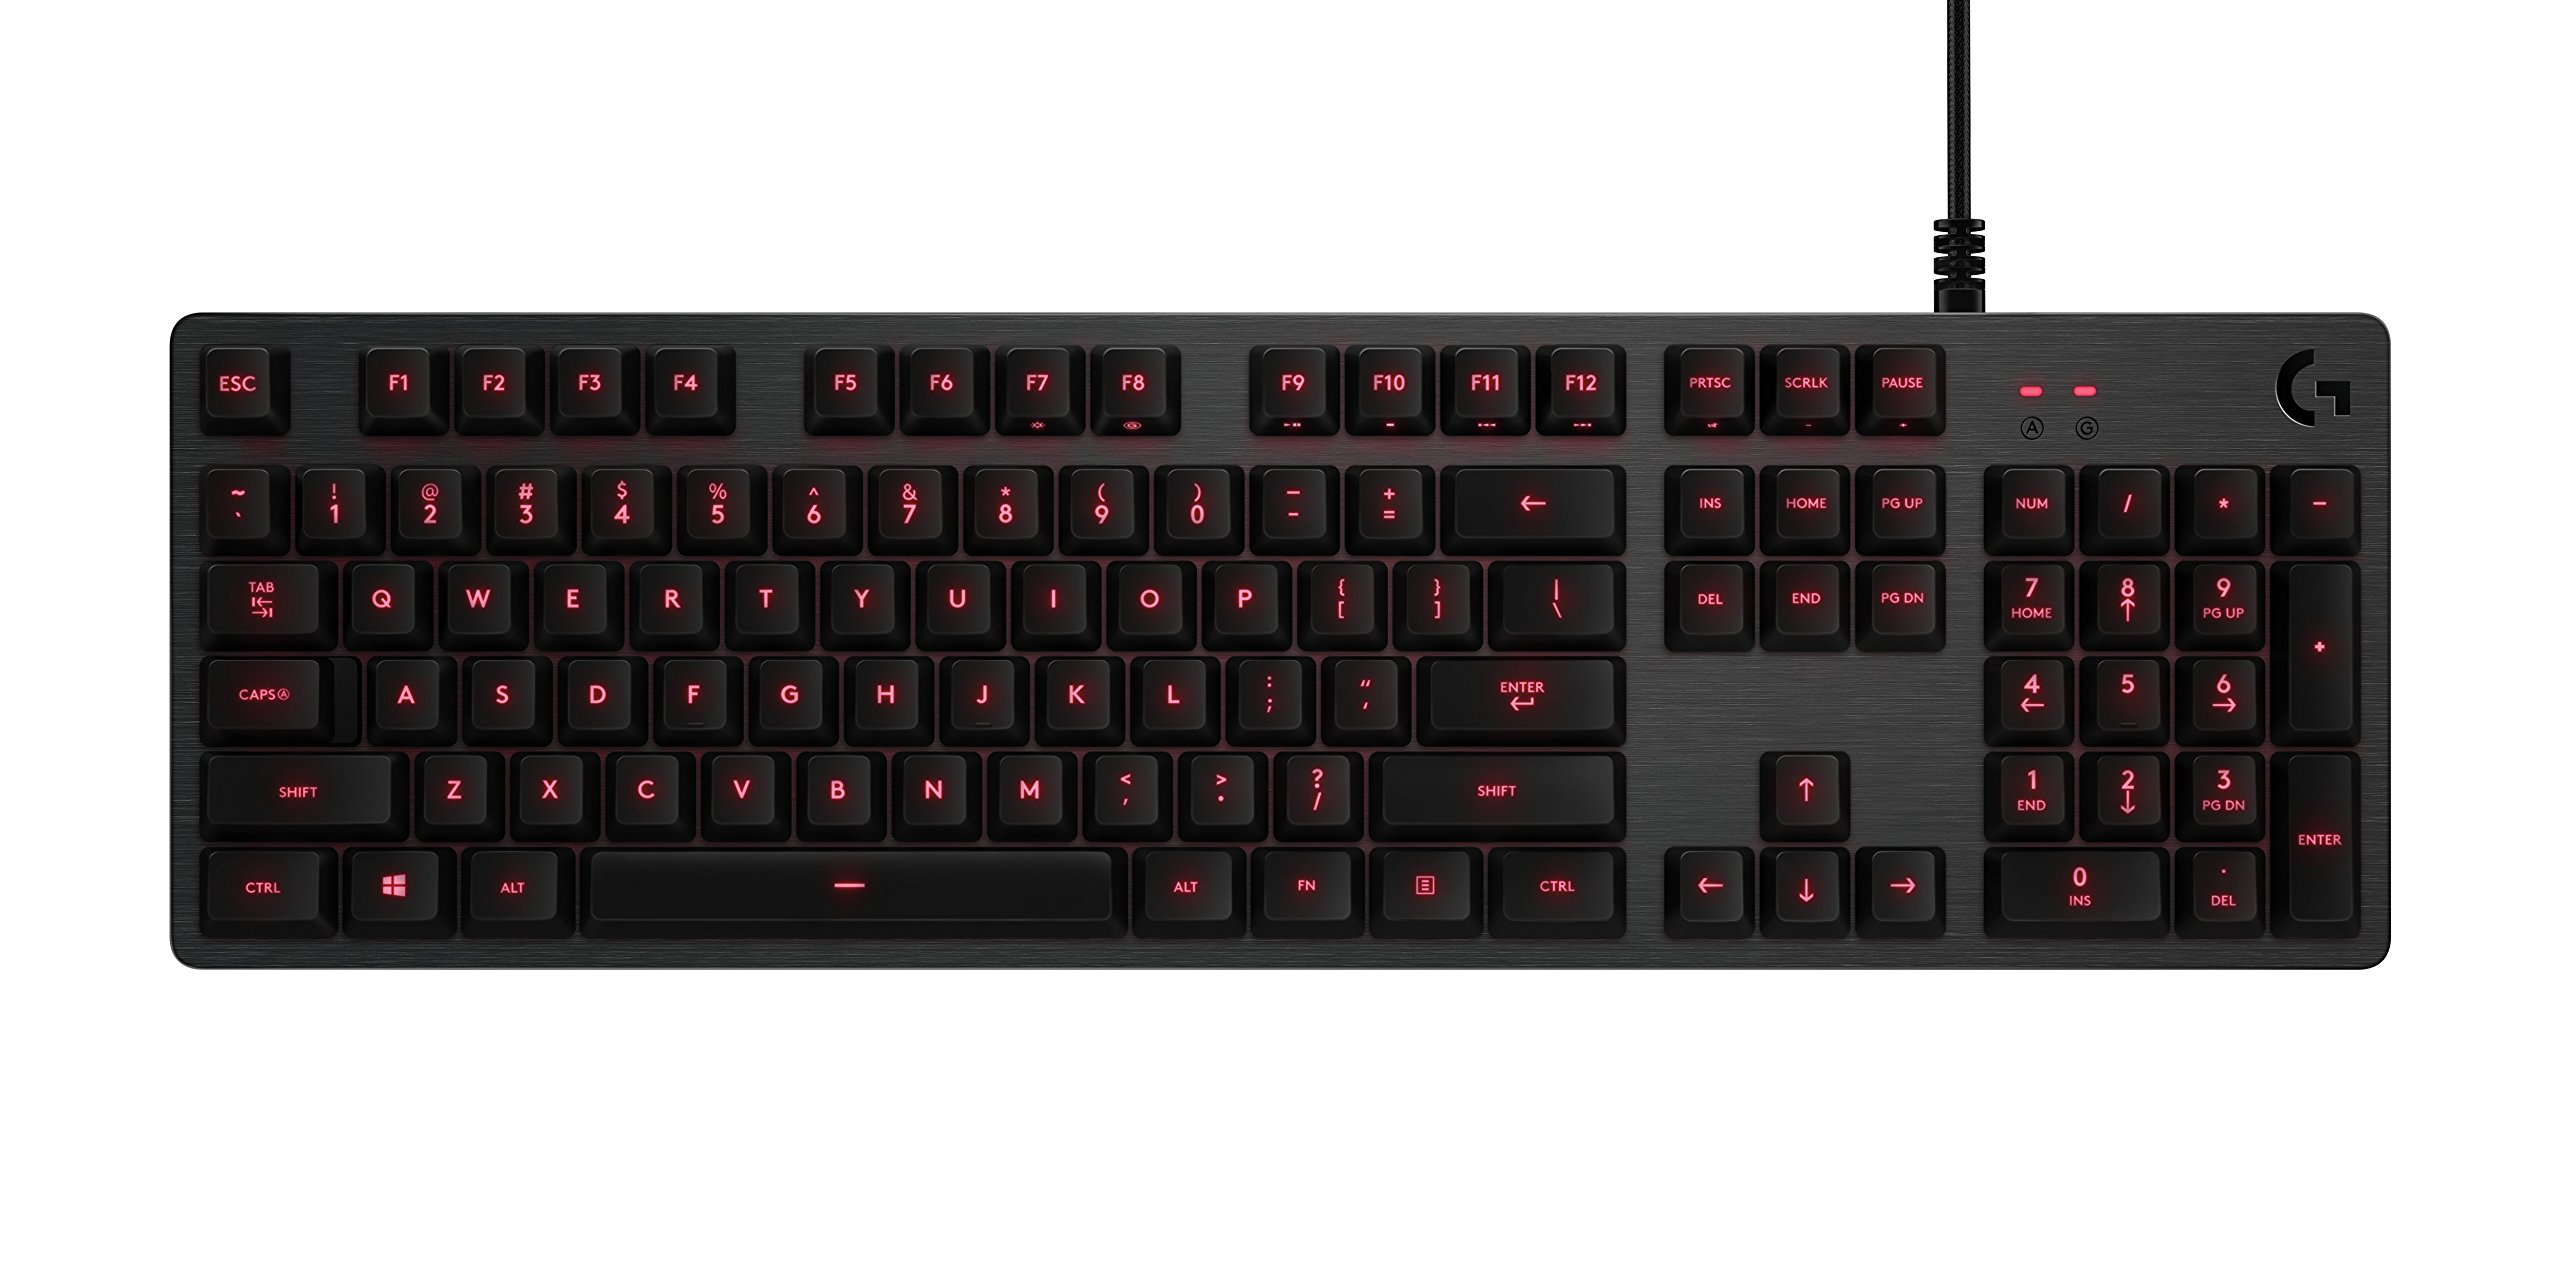 Logitech G413 Backlit Mechanical Gaming Keyboard with USB Passthrough – Carbon by Logitech